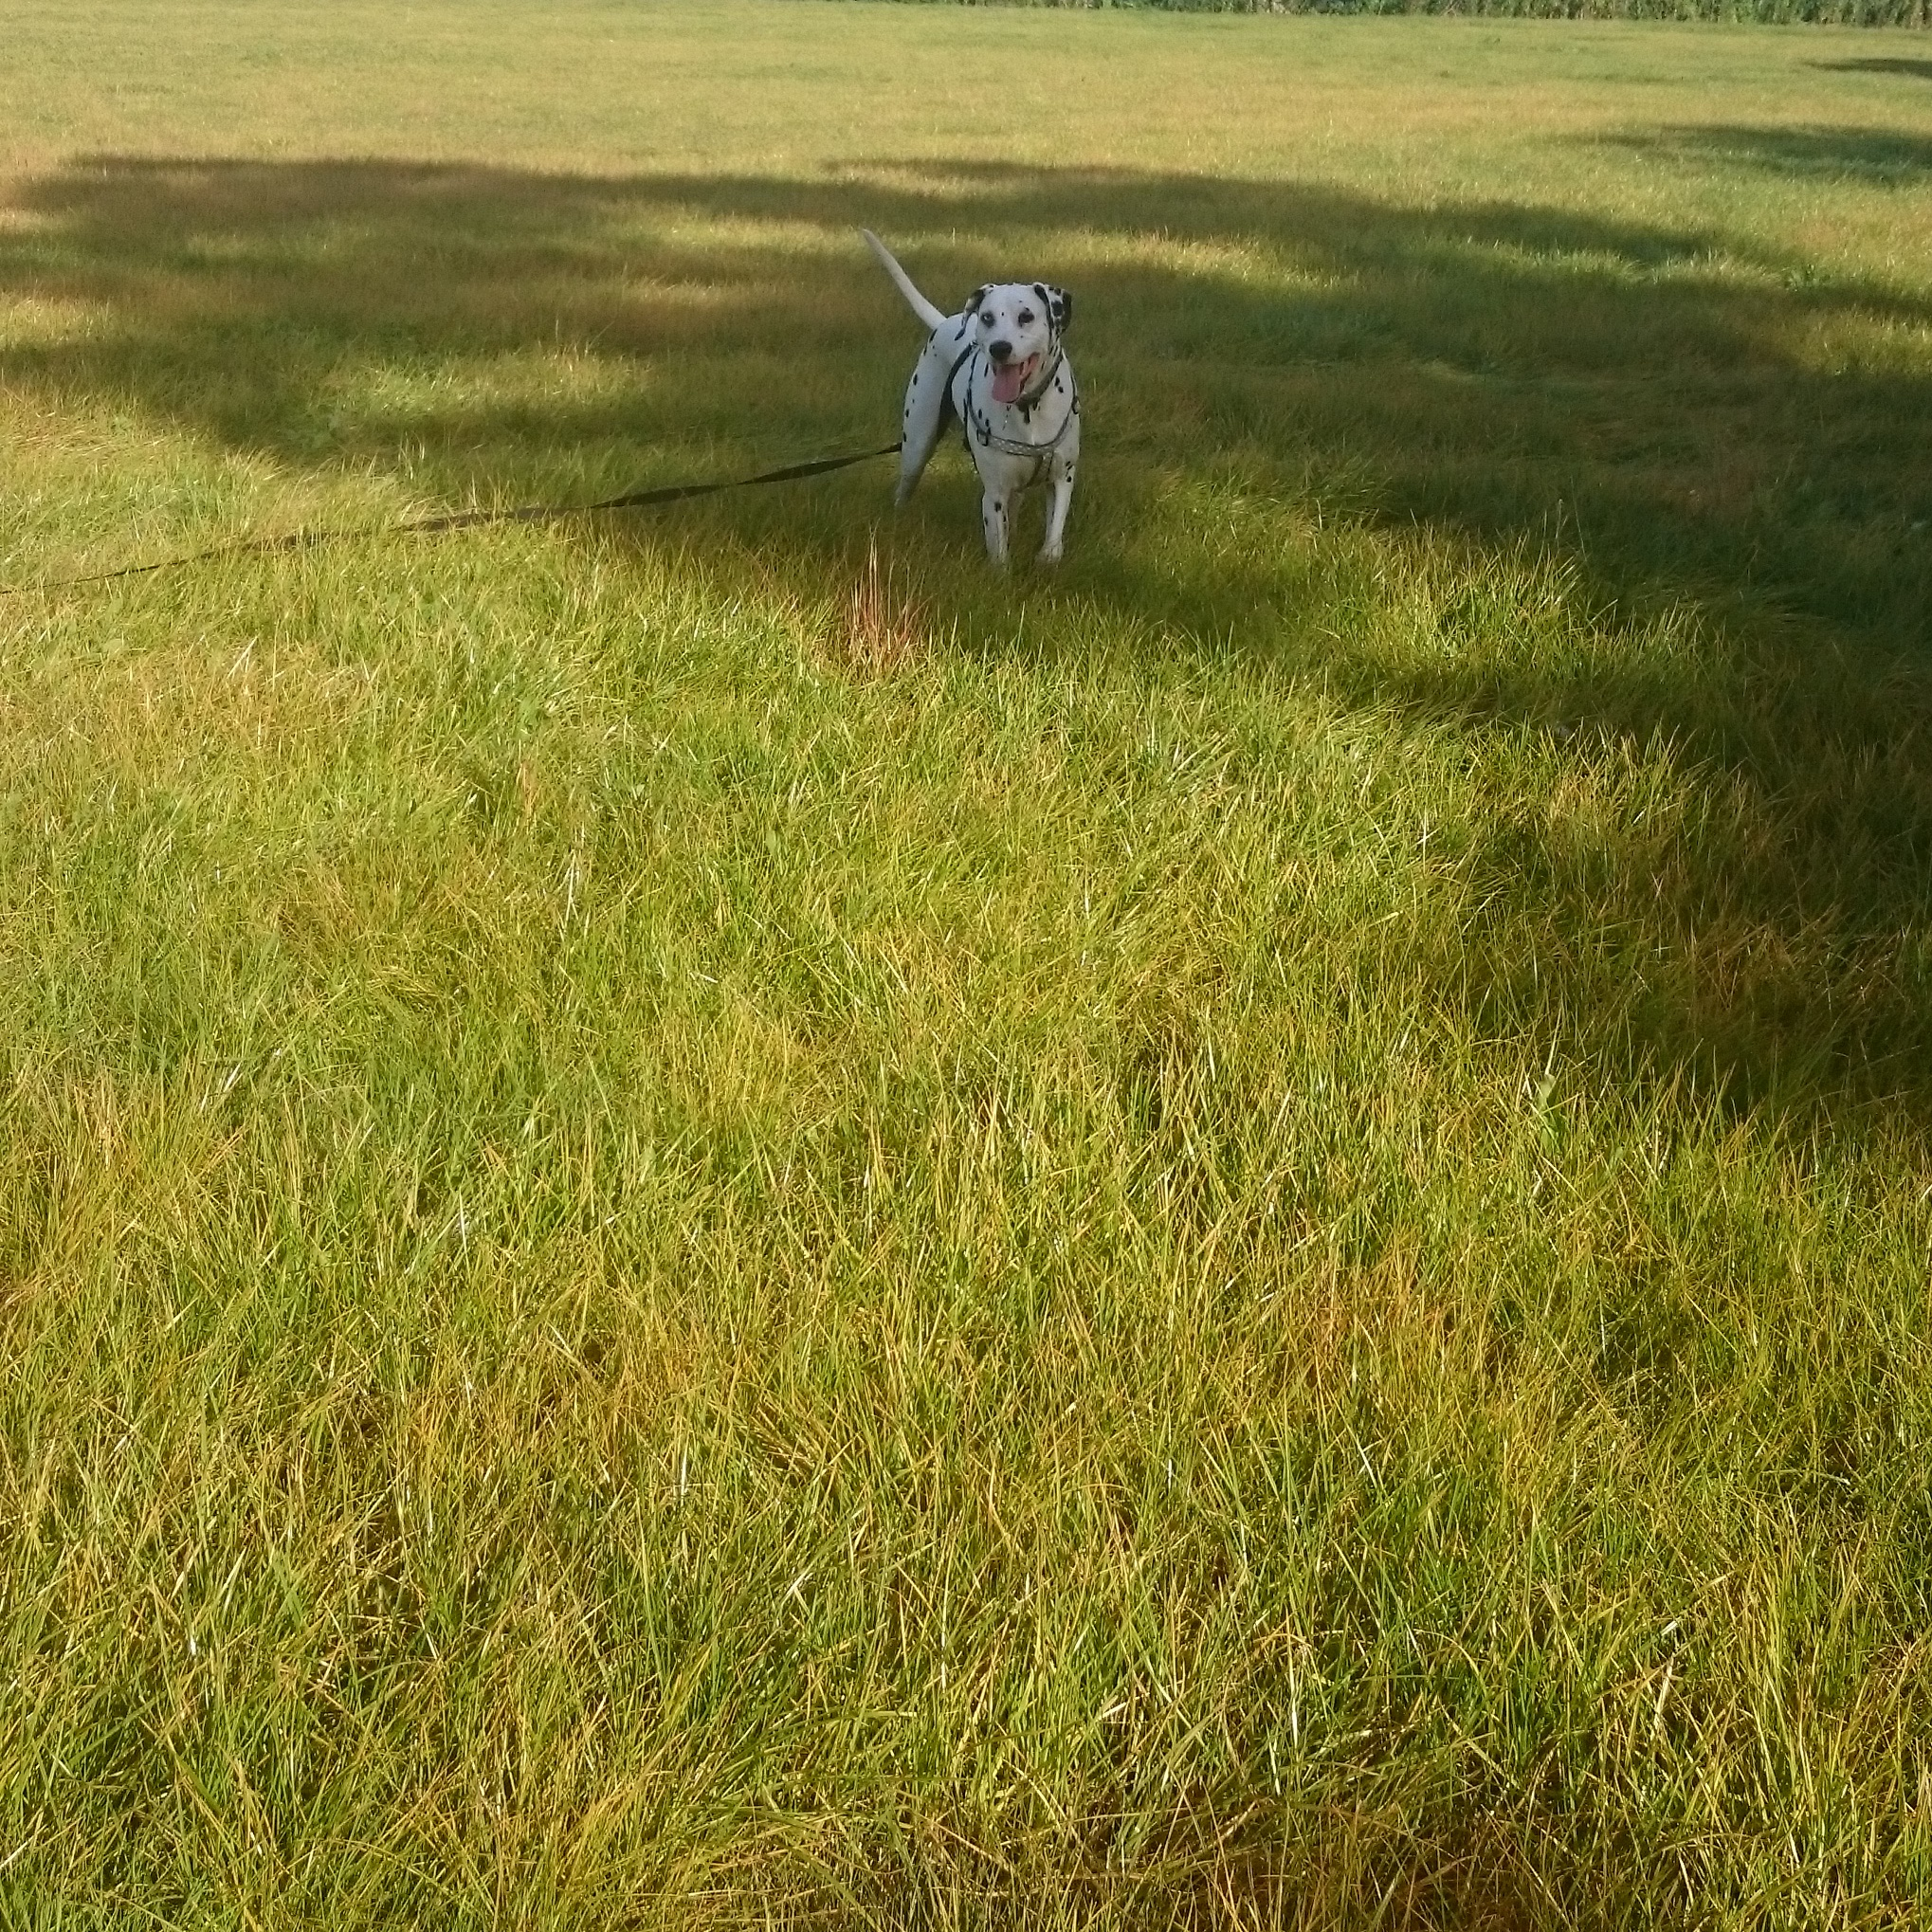 Logan walking in the field!